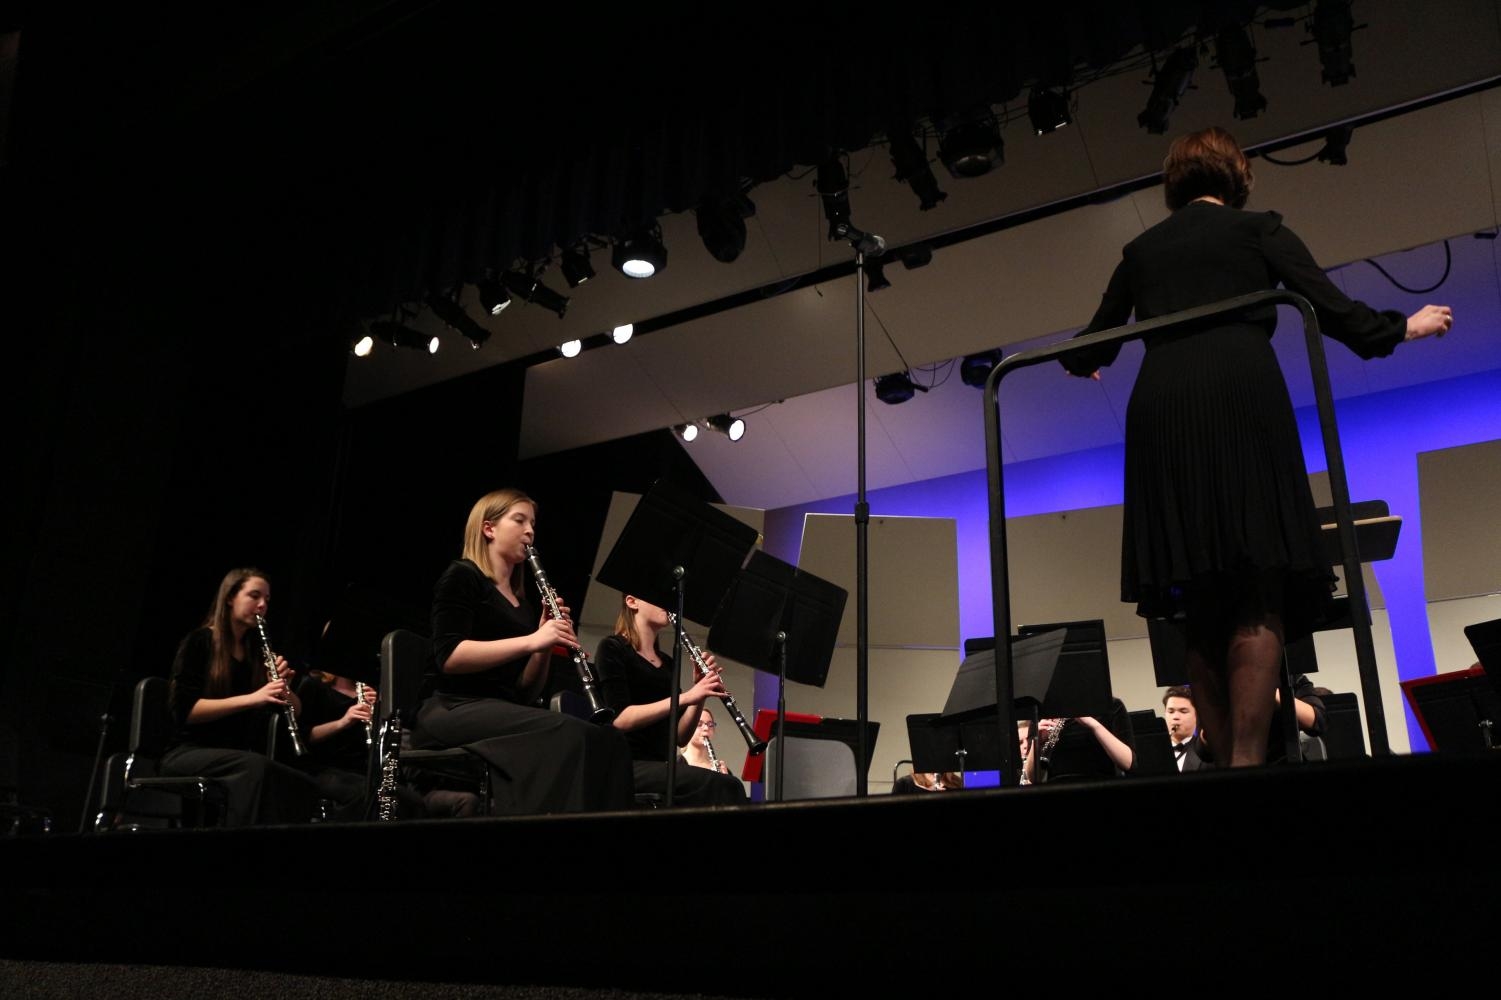 Performing+at+the+band+concert%2C+Olivia+Melsha%2C+senior%2C+and+Phebe+Hammond%2C+sophomore%2C+play+the+clarinets.